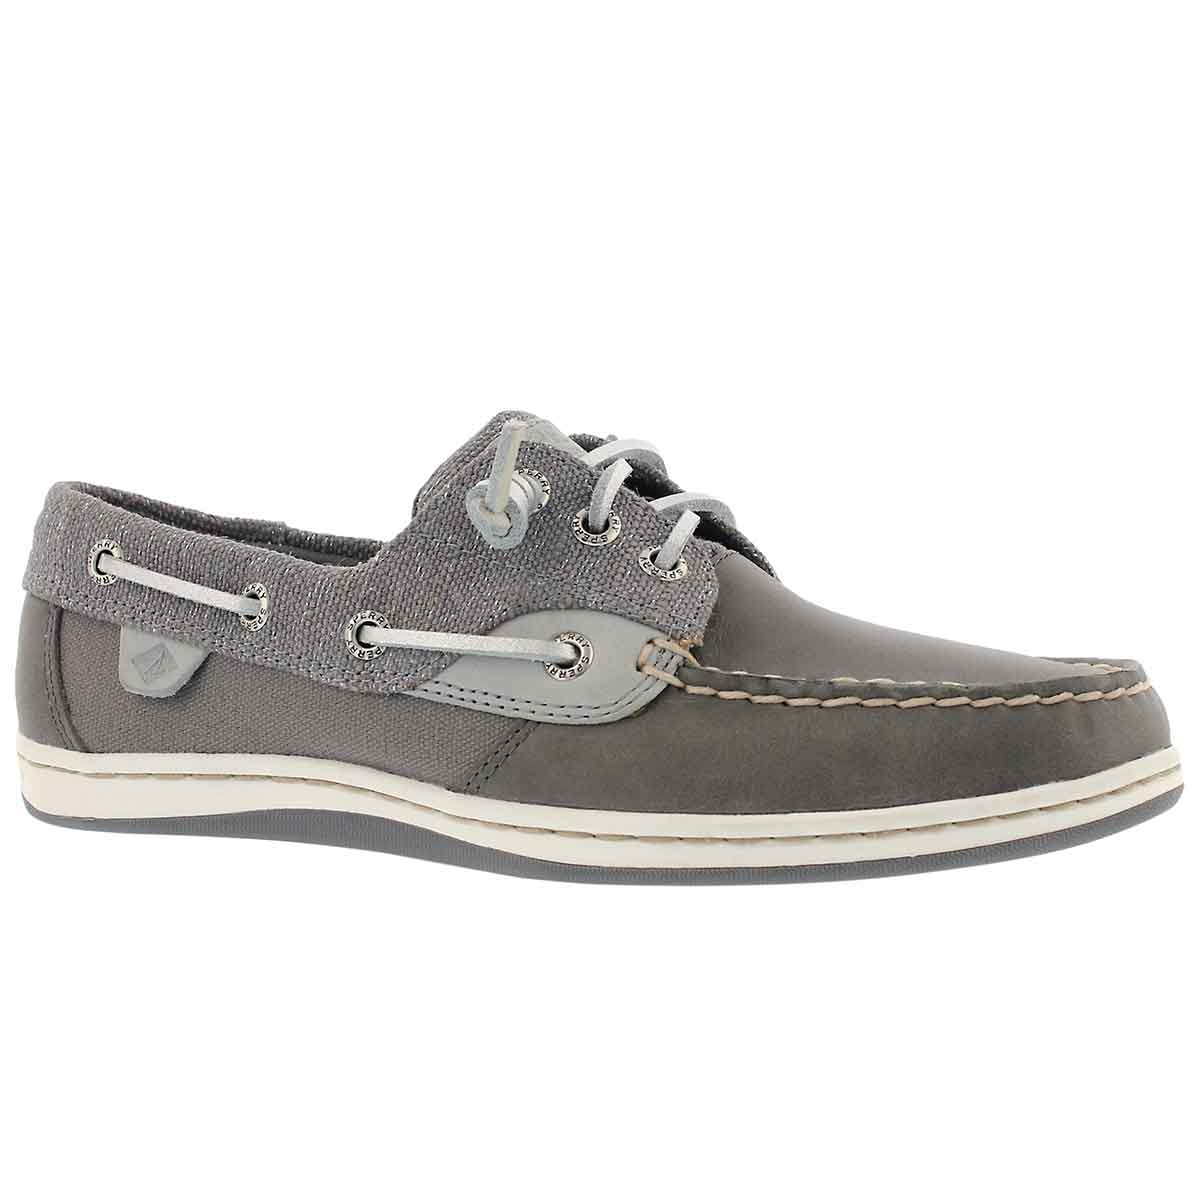 Women's SONGFISH SPARKLE grey boat shoes